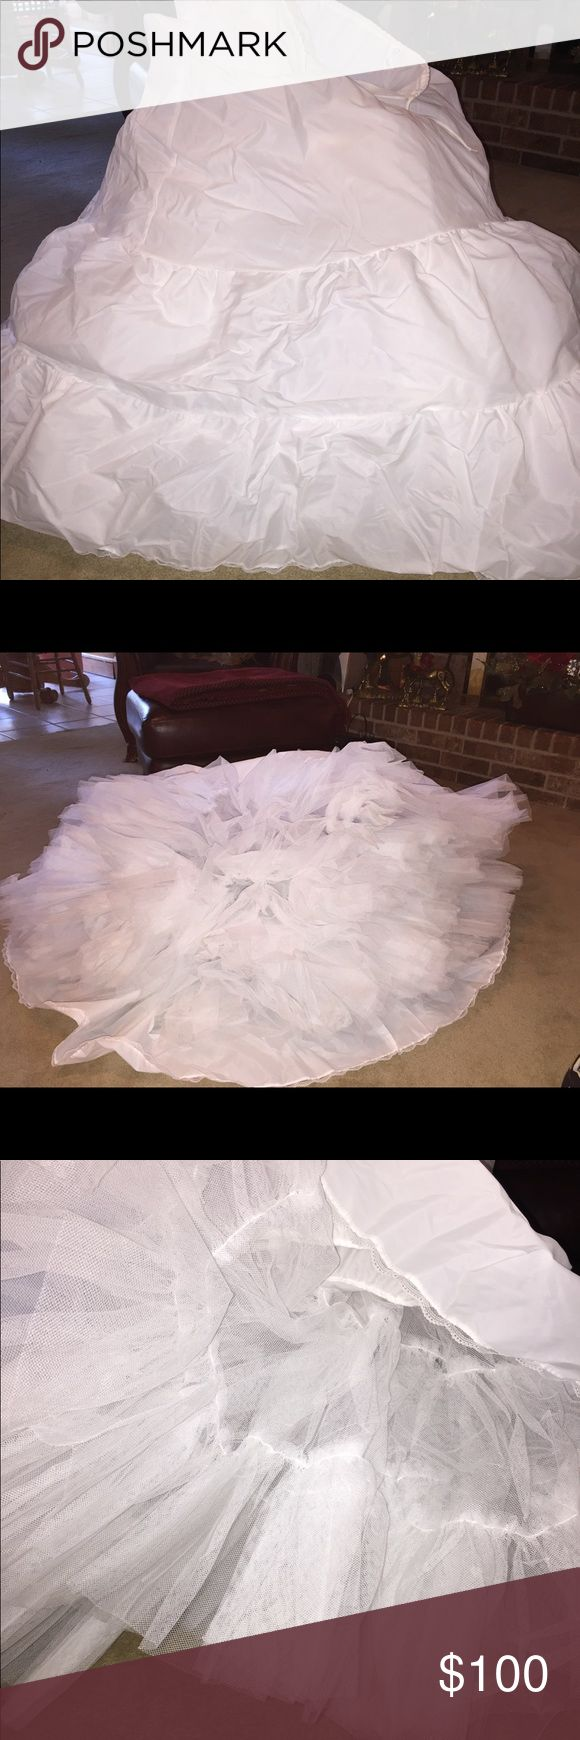 48 hr SALE!! prom quinceanera bridal 16 Petticoat Full long white tulle petticoat slip for bride wedding dress bridesmaid or formal attire undergarment prom debutant quince 15 sweet sixteen 16.  Has drawstring closure. Skirts